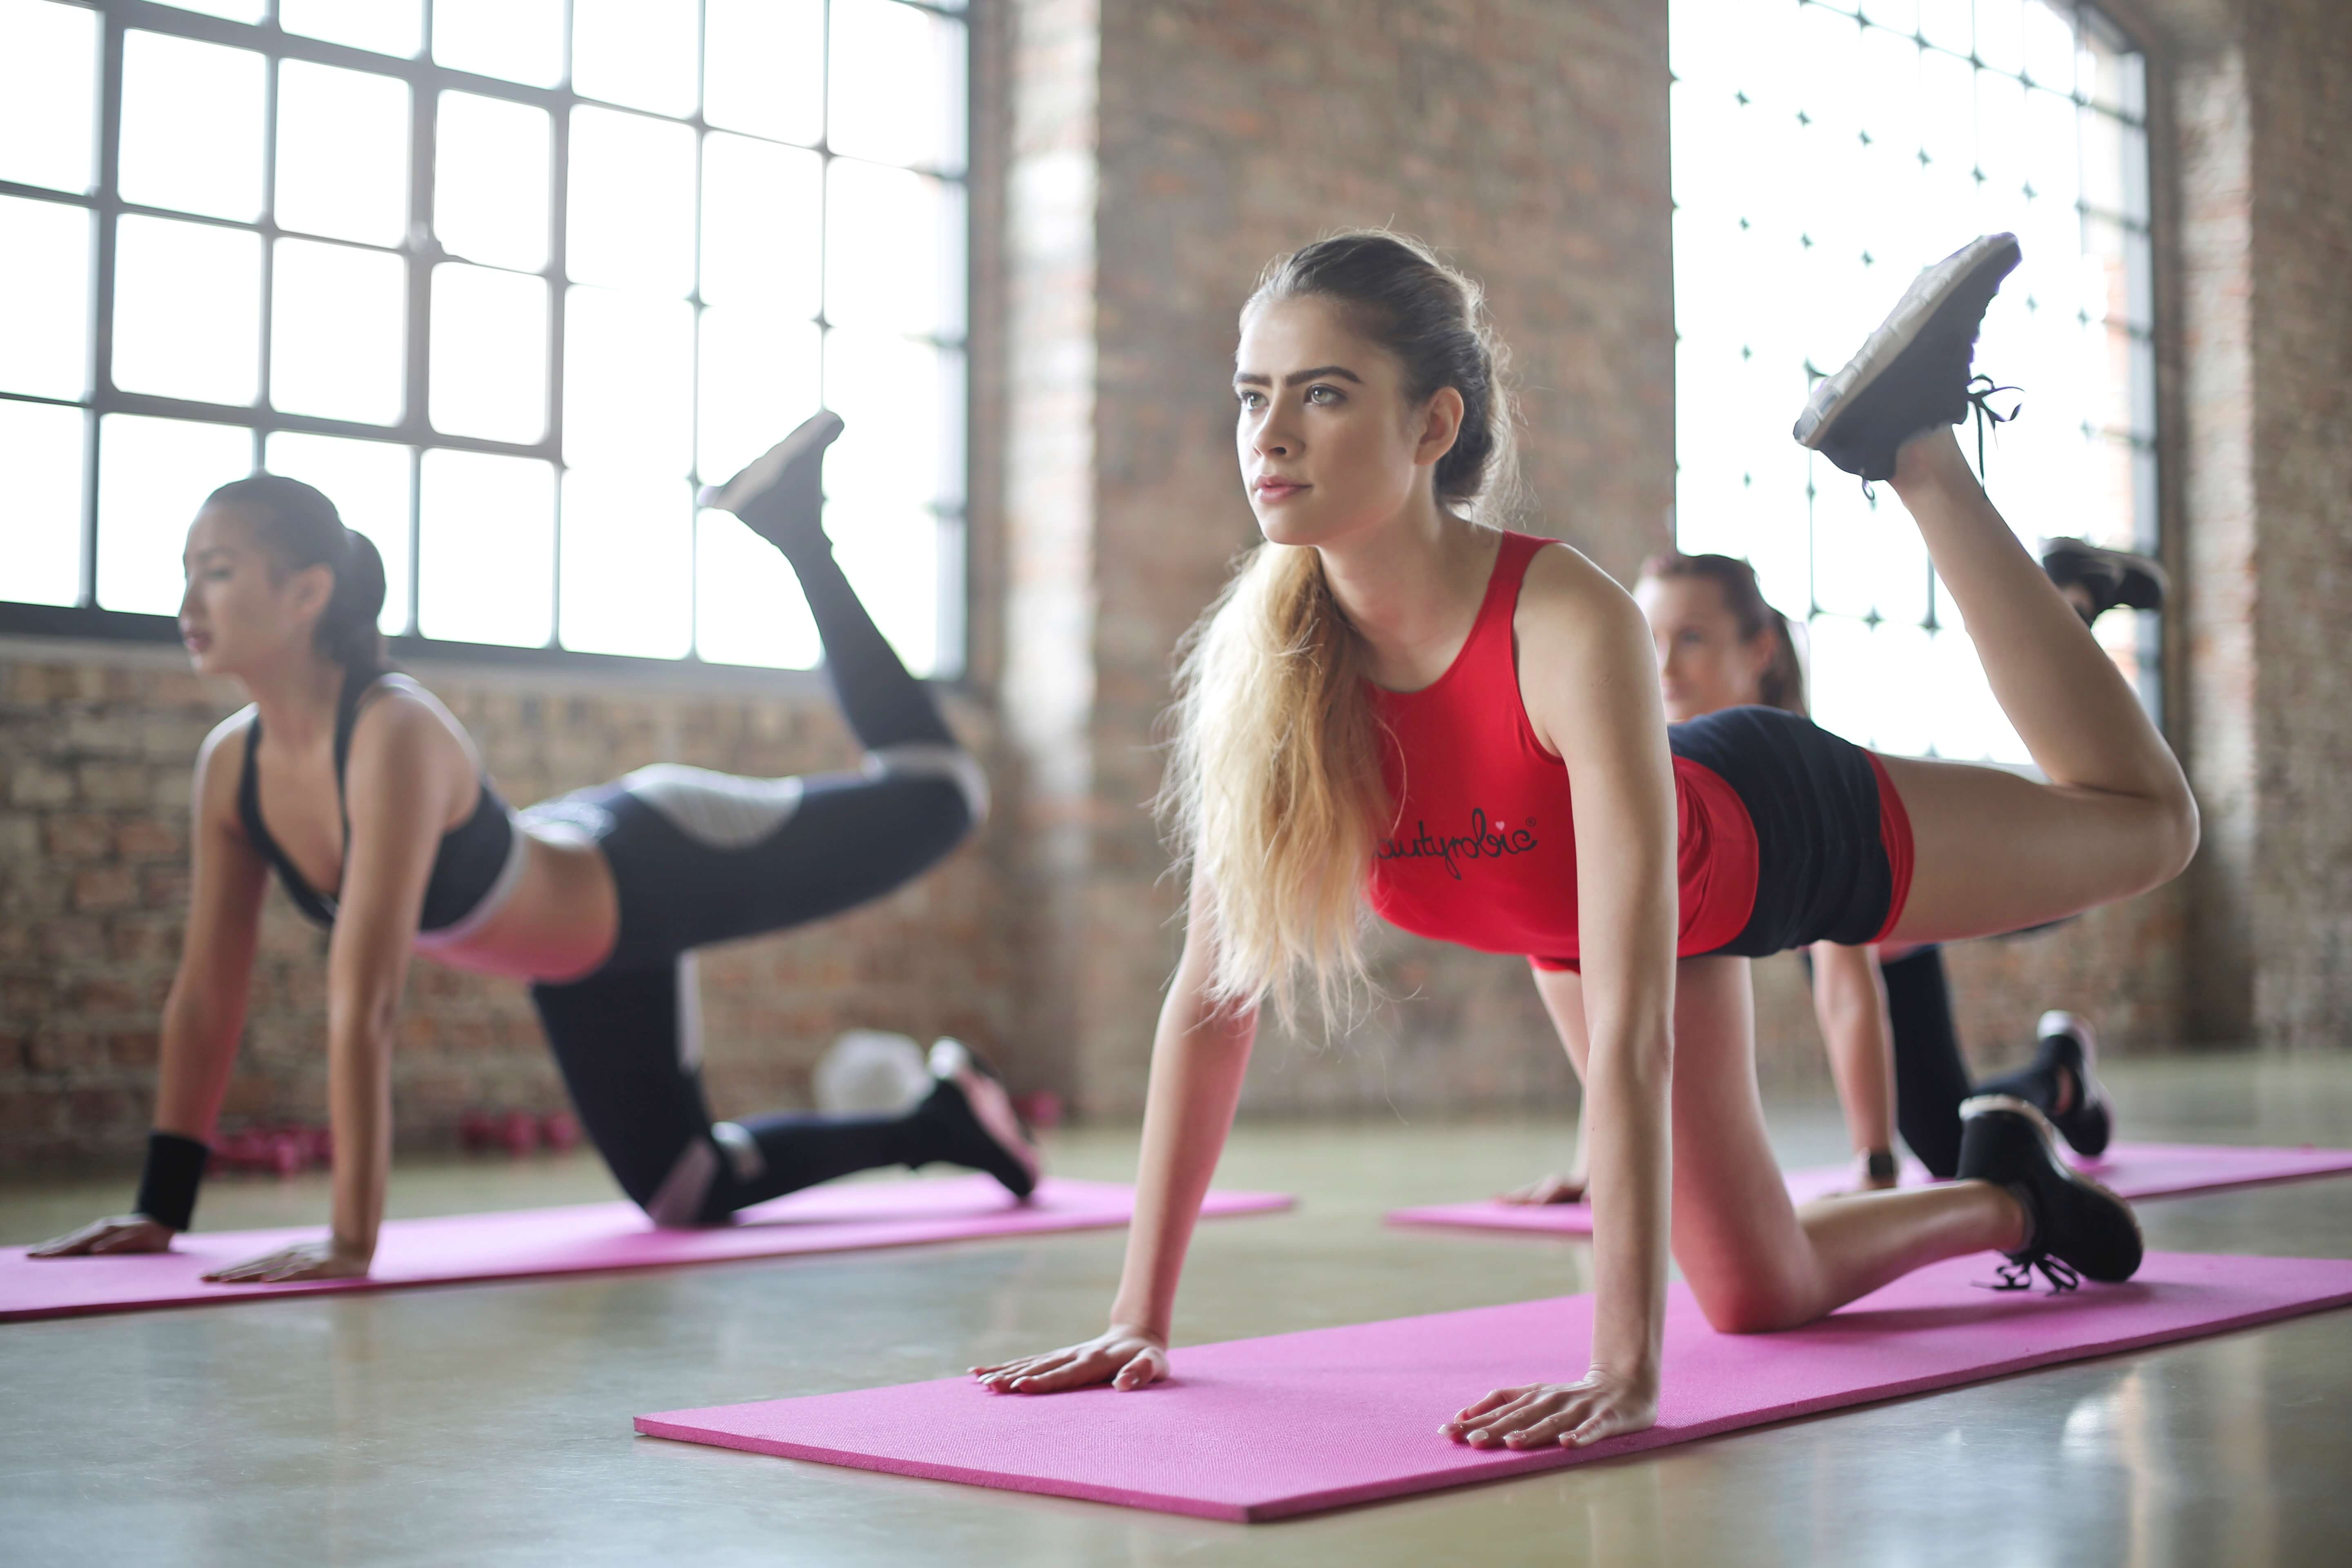 Grow fitness clientele - yoga customers